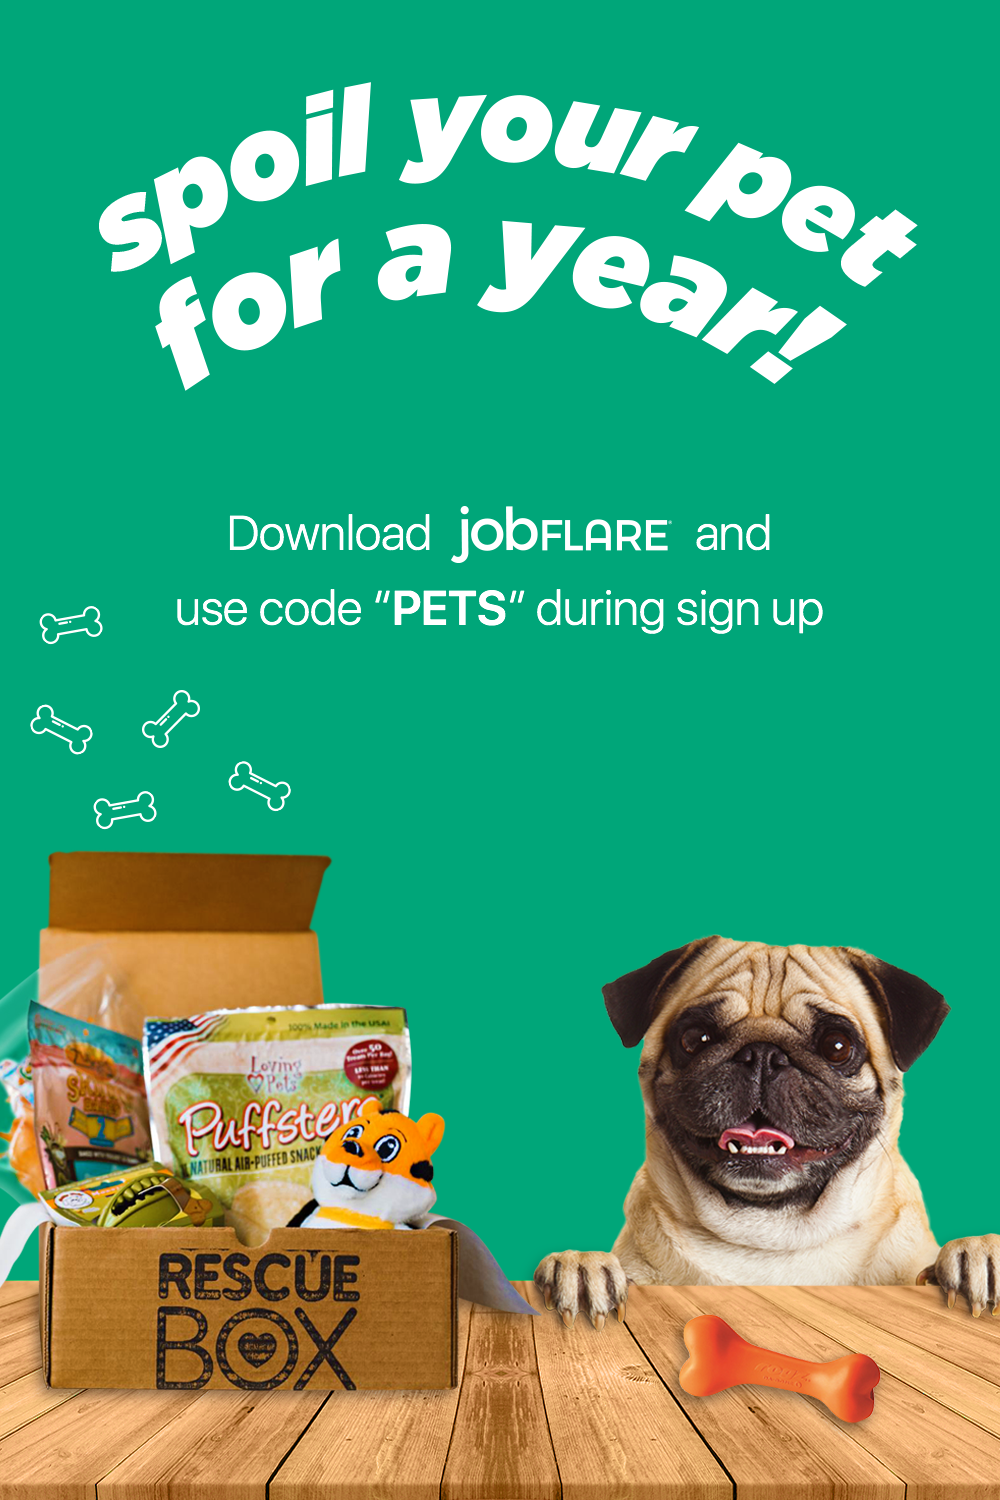 Spoil Your Pet With Rescuebox And Help Shelter Pets At The Same Time To Enter 1 Download Jobflare With Images Job Posting Tech Career Interview Thank You Notes